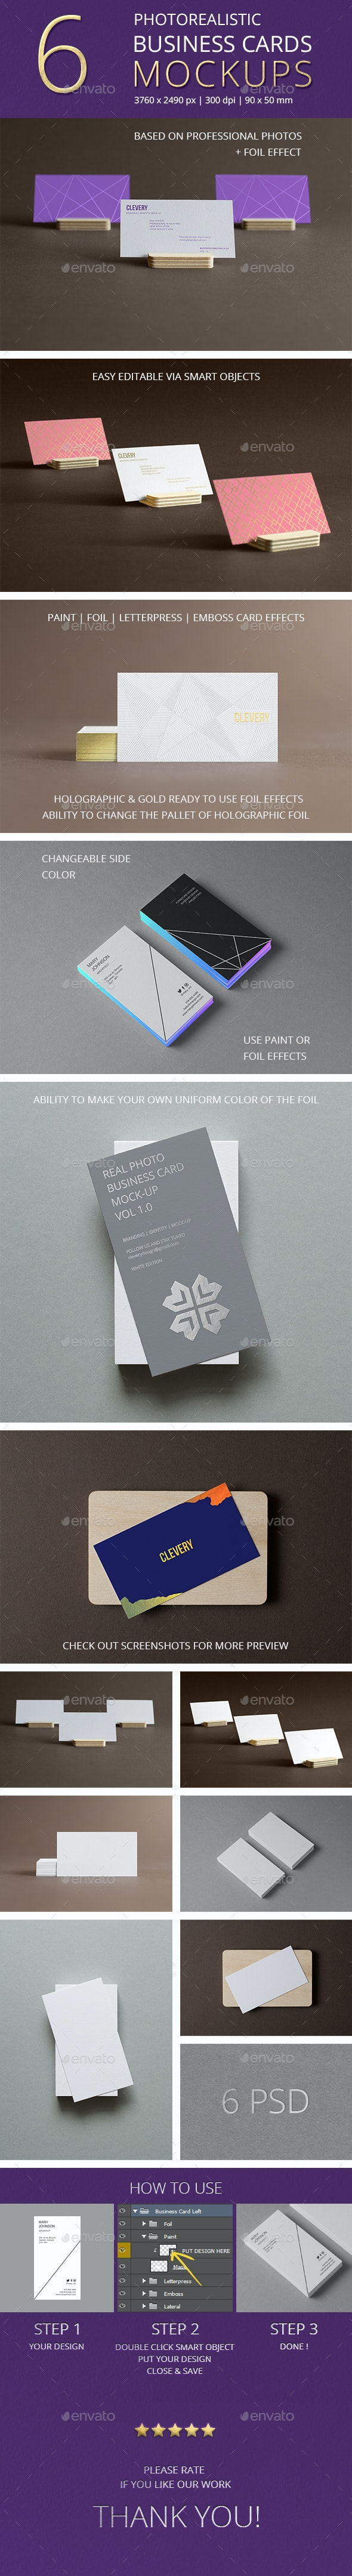 Photorealistic Business Cards Mockup/ Vol 1.0 - Business Cards Print